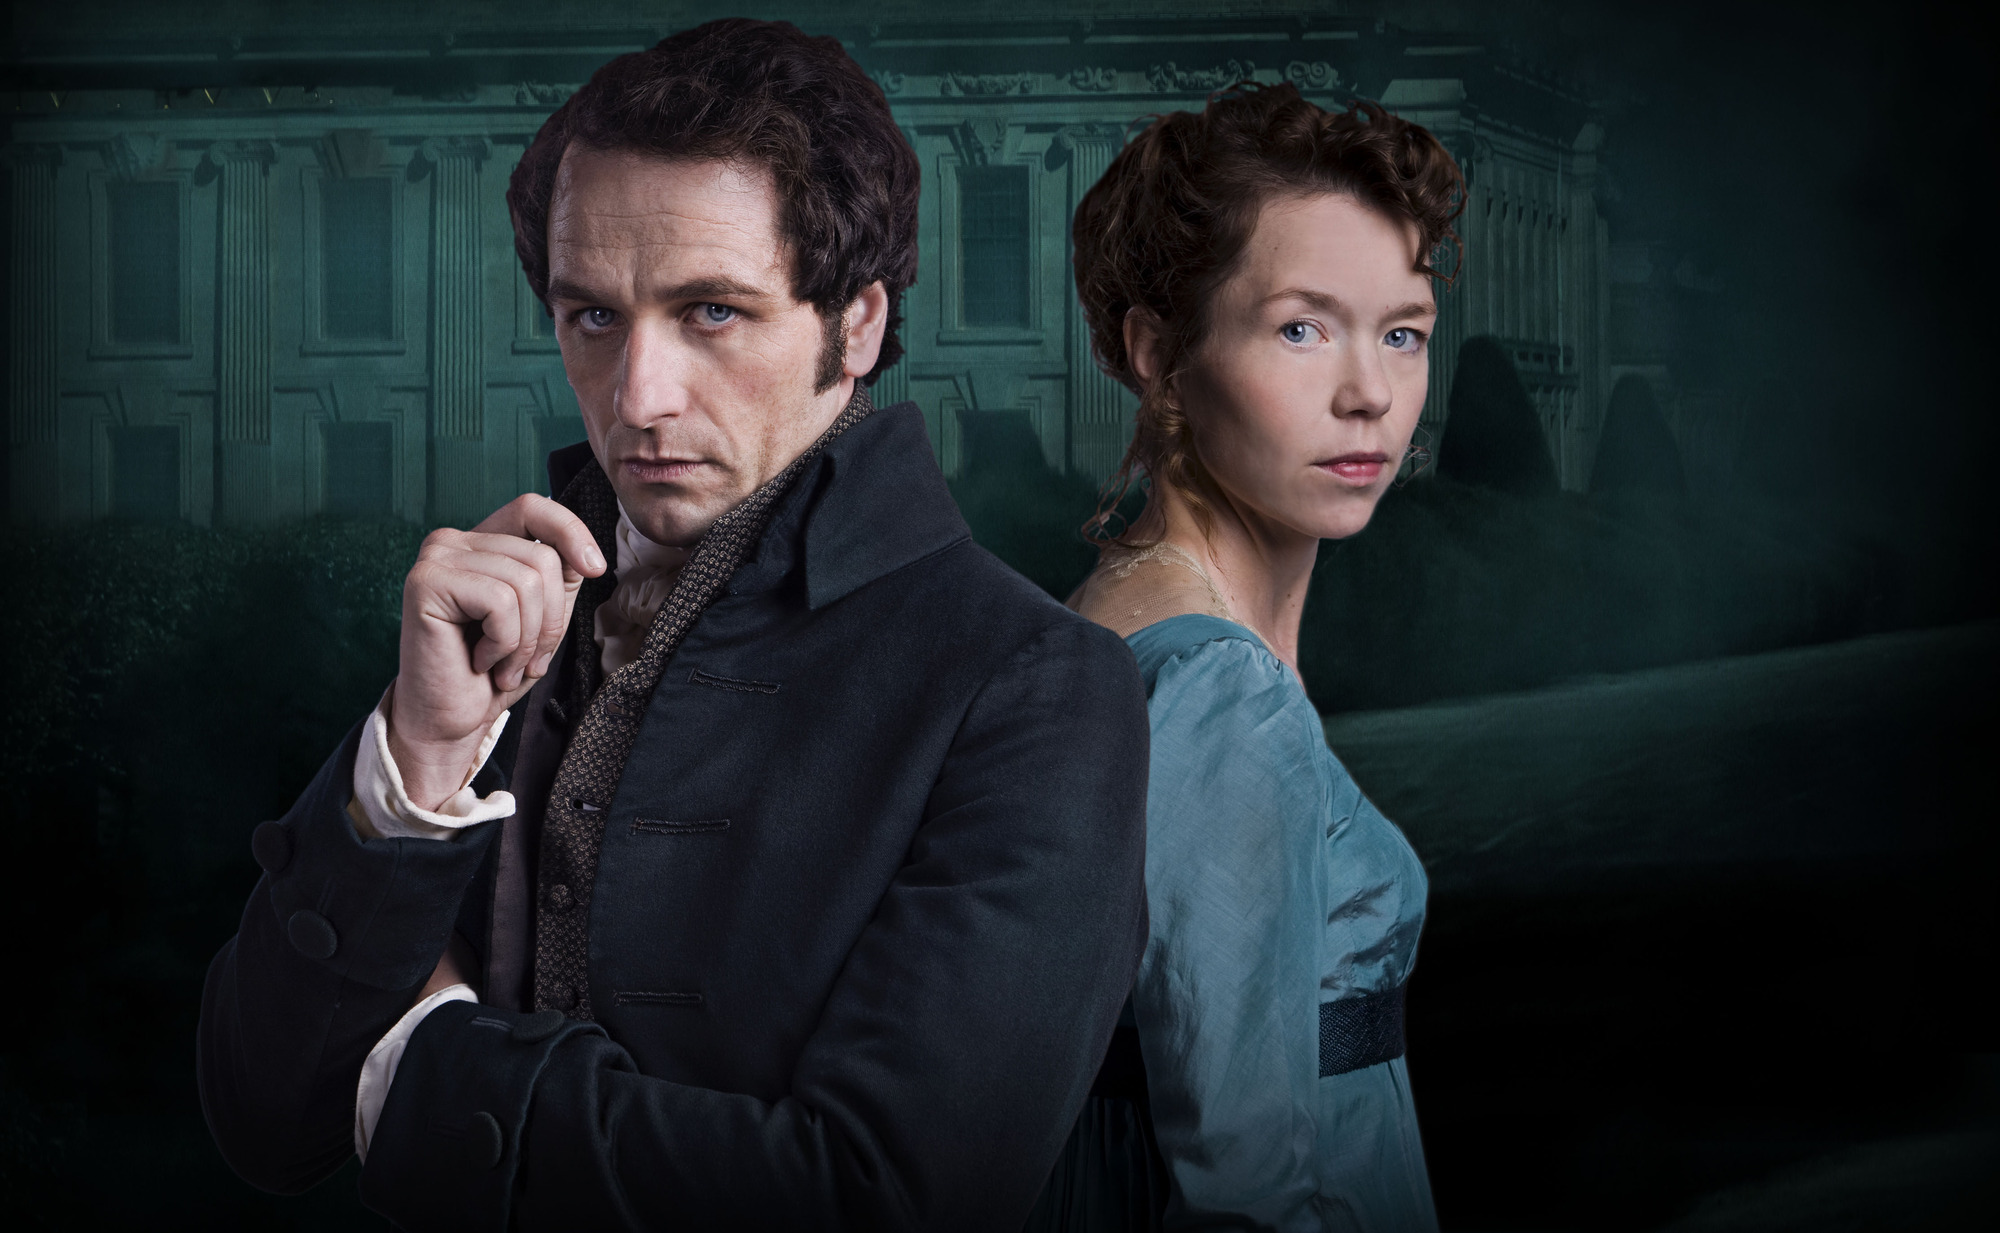 Matthew Rhys plays Mr Darcy in the new show (Picture: Robert Viglasky/BBC)